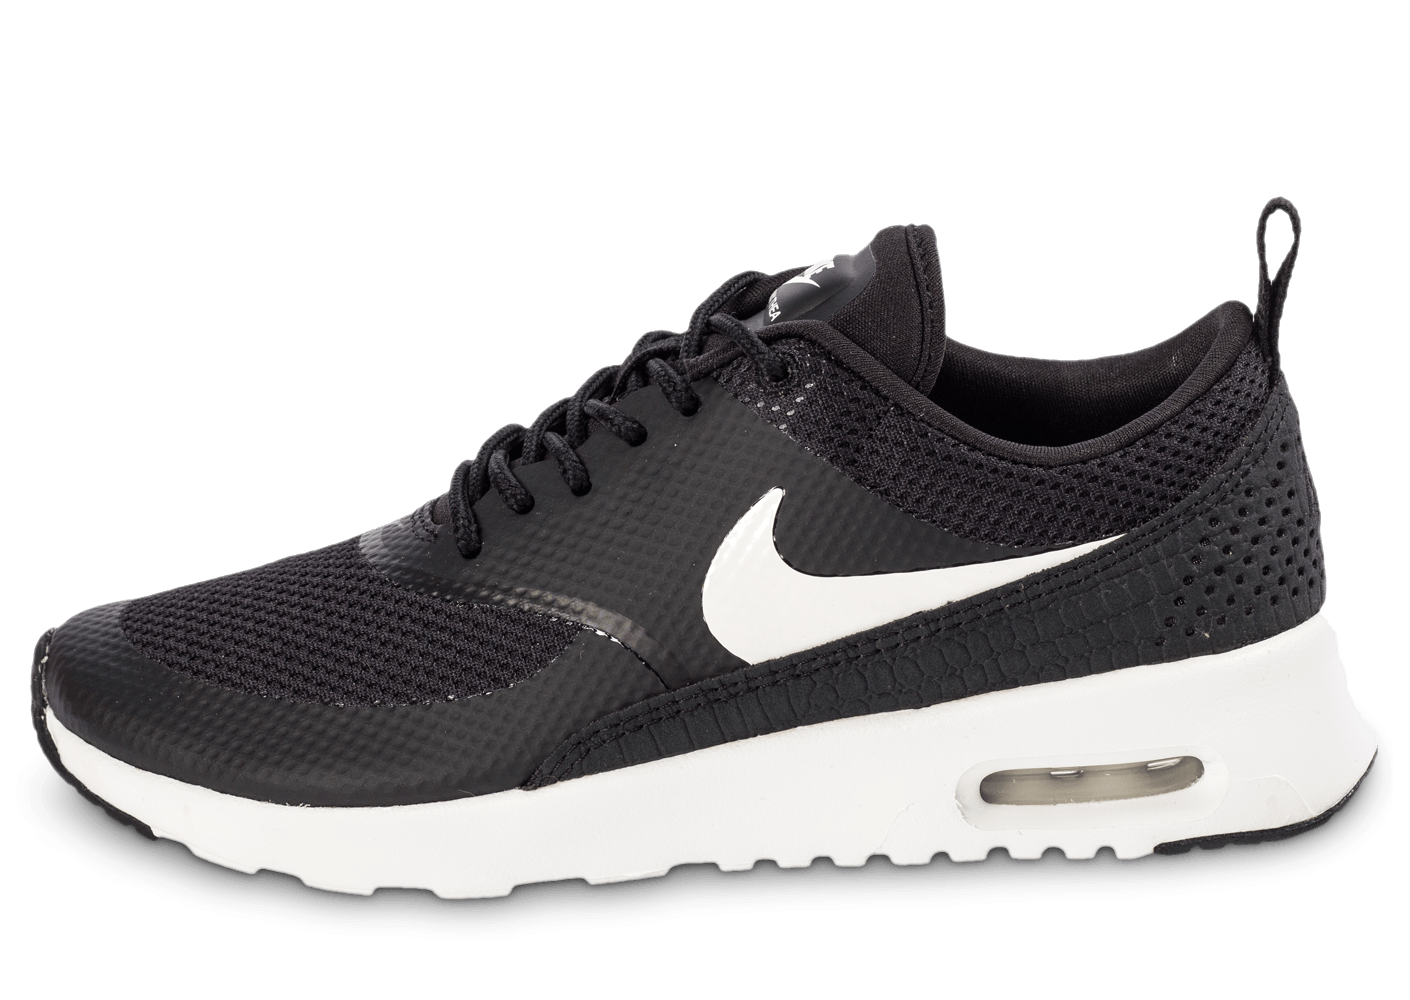 9dbce42705 Nike Air Max Thea noire et blanche - Chaussures Baskets femme - Chausport